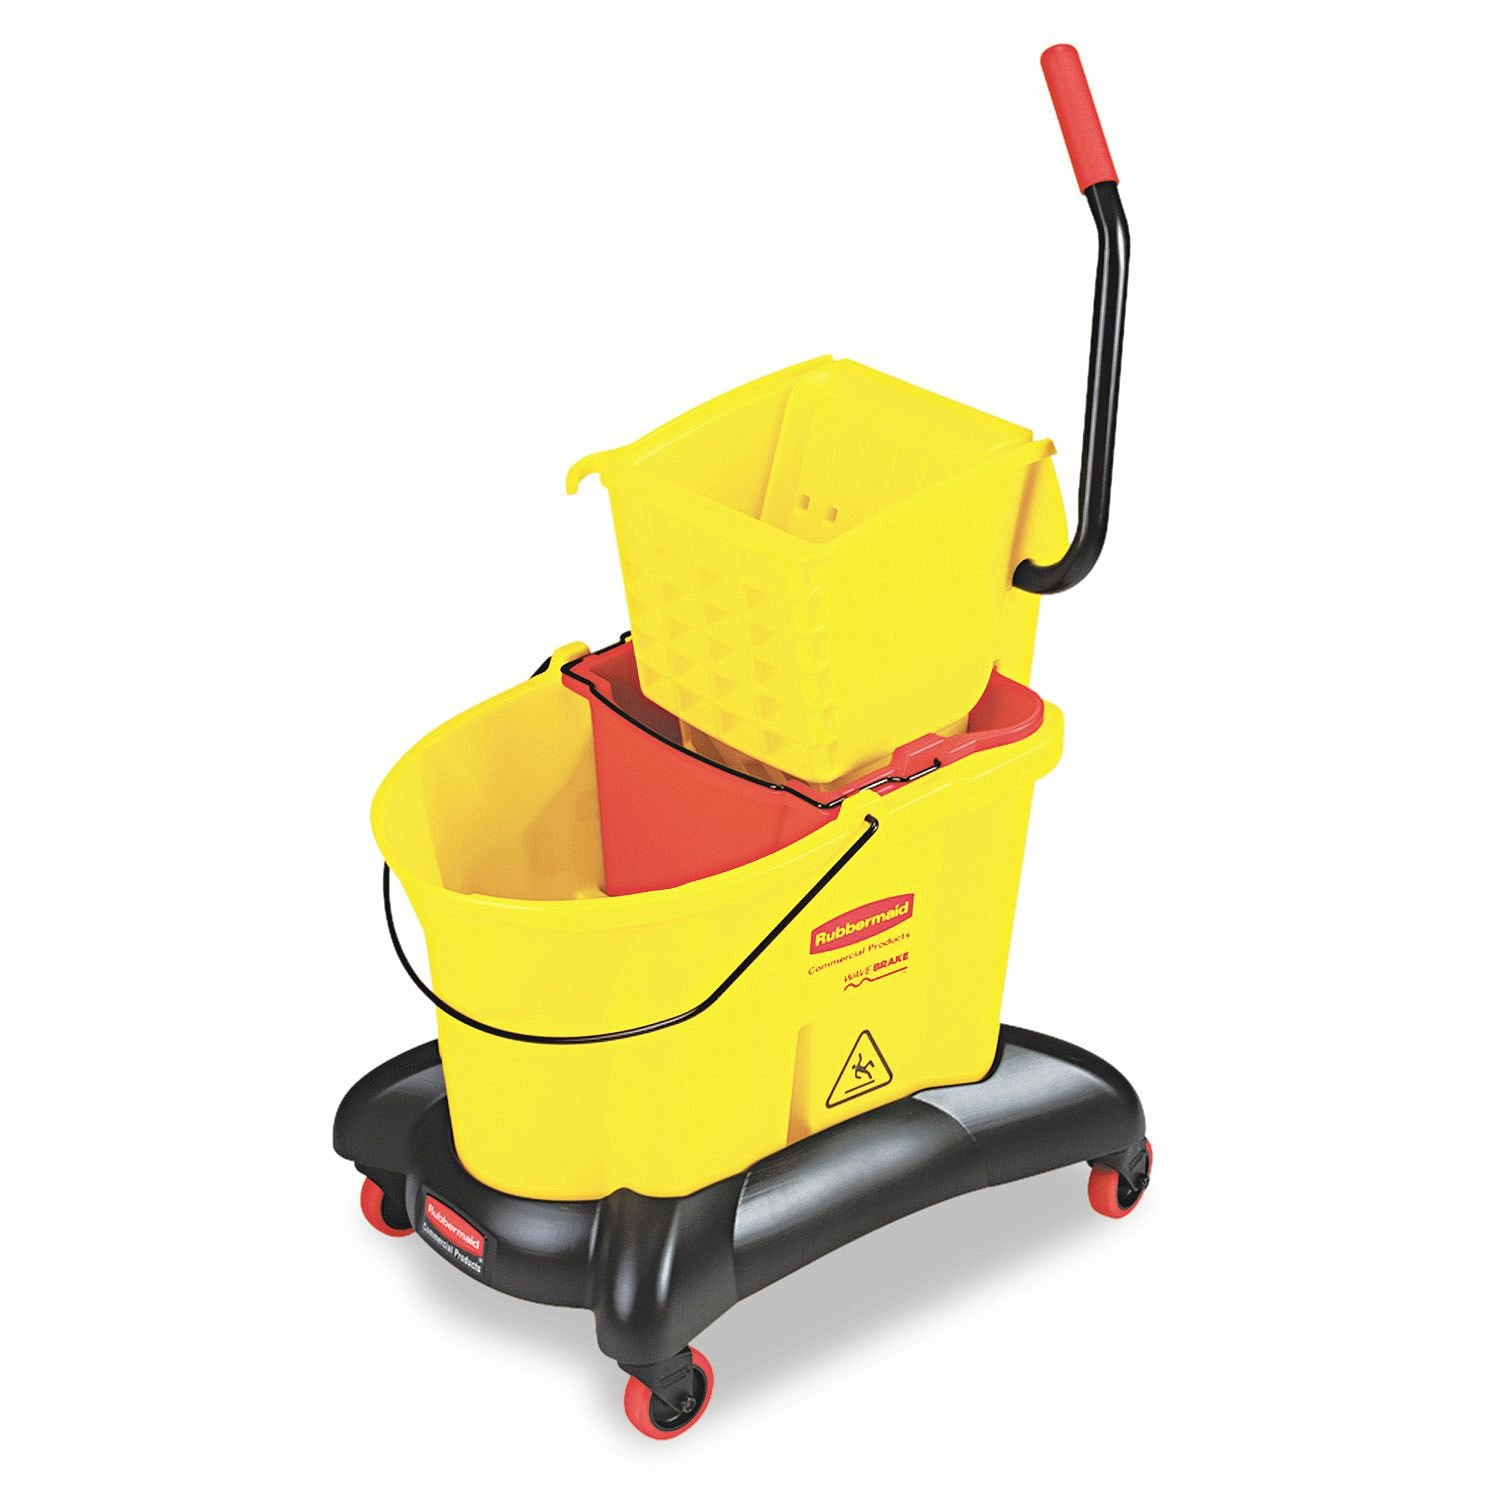 Rubbermaid Commercial - Wavebrake 35 Qt Dual Water Side Press Mop Bucket & Wringer Yellow ''Product Category: Breakroom And Janitorial/Cleaning Tools & Supplies''